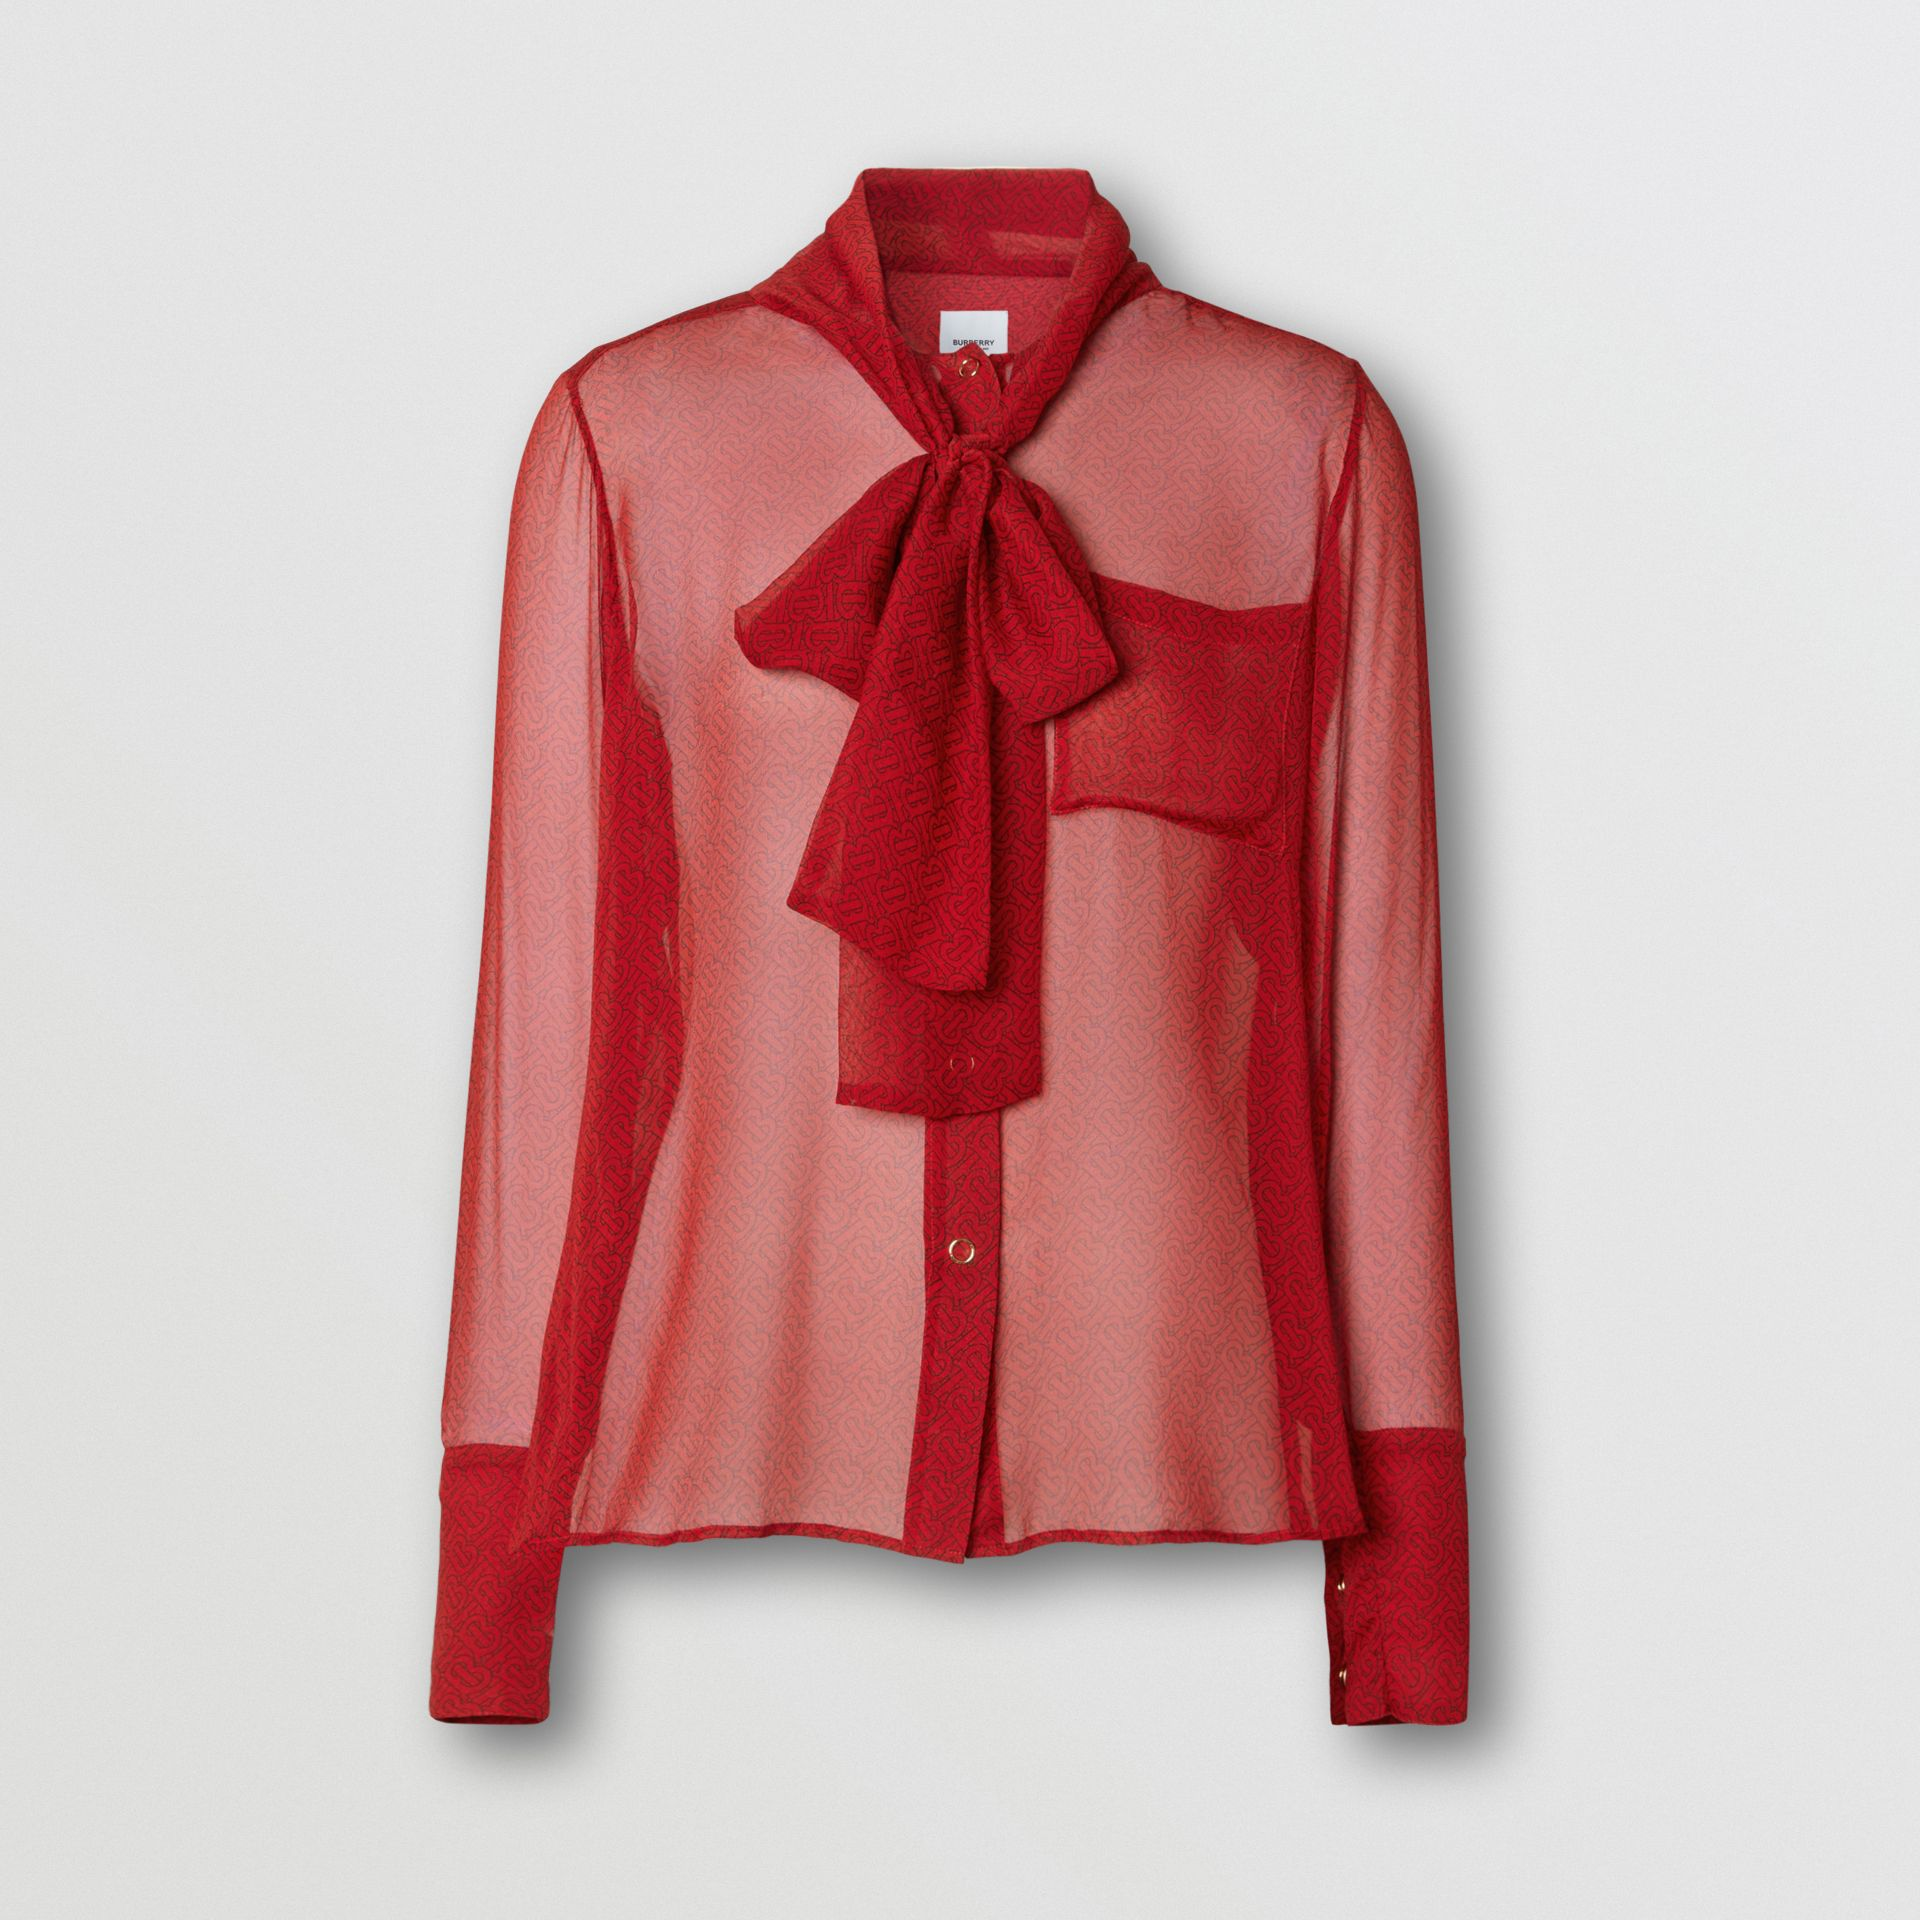 Monogram Print Silk Chiffon Pussy-bow Blouse in Bright Red - Women | Burberry - gallery image 3